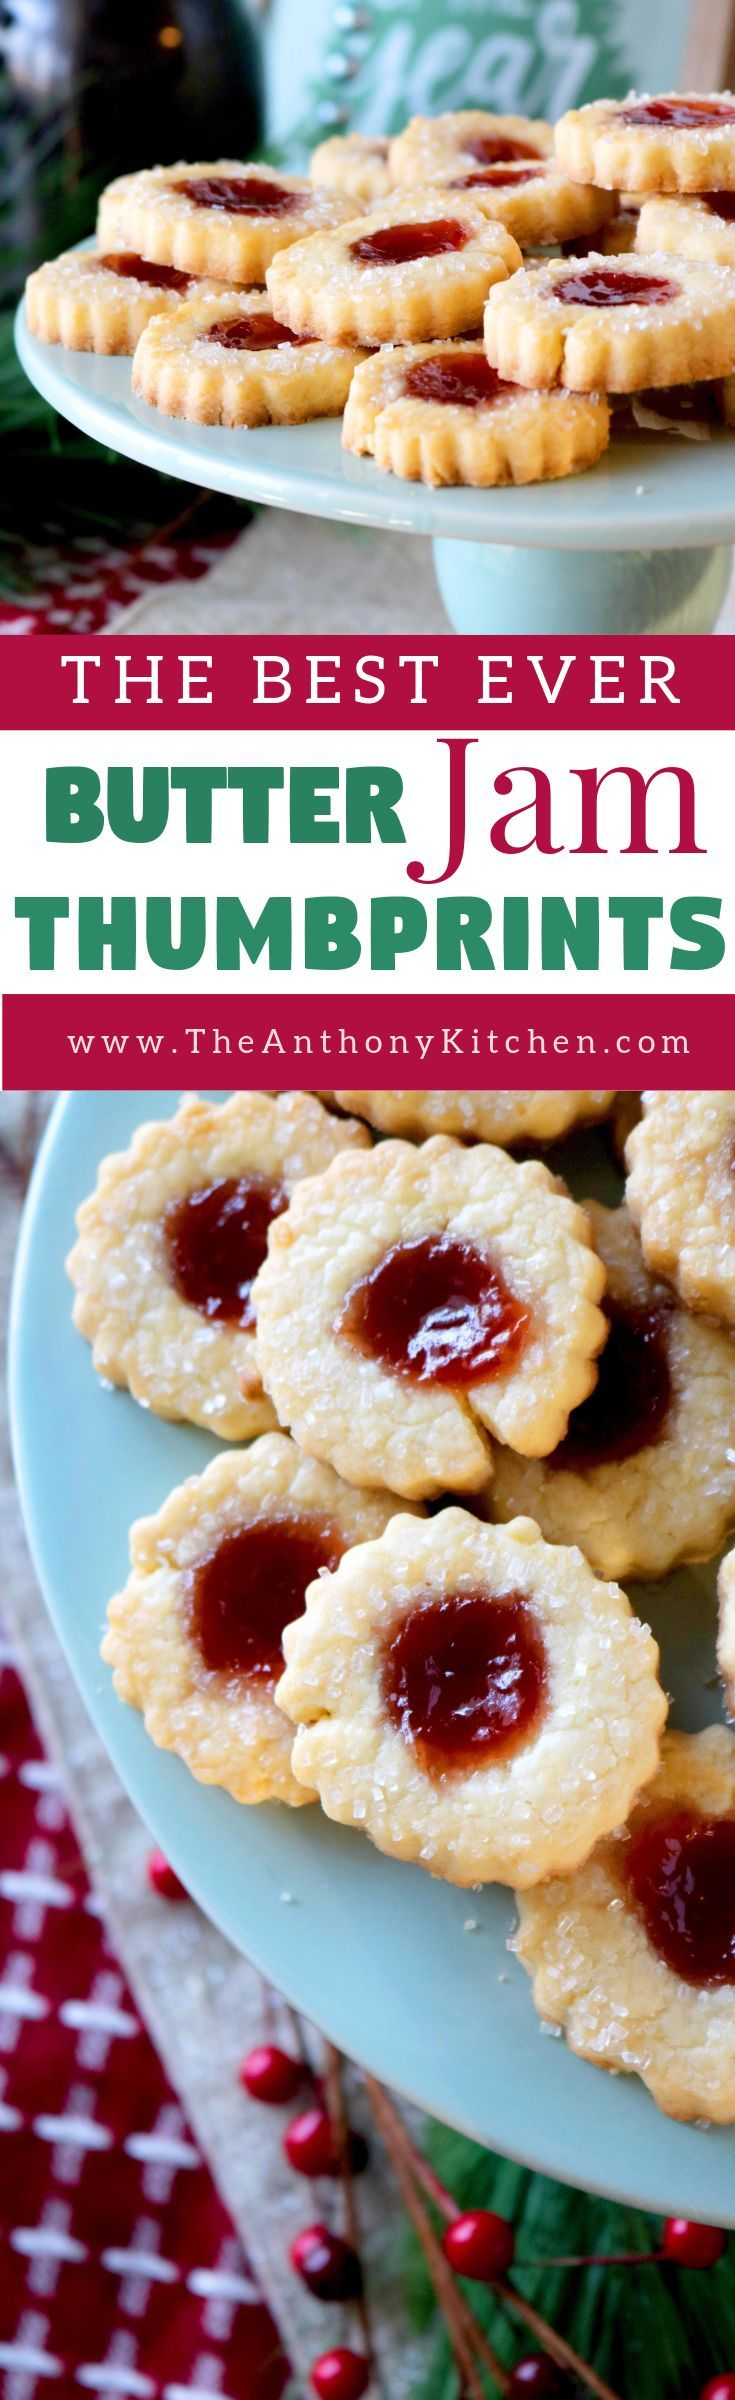 Butter Cookie Recipes | A recipe for butter jam thumbprint cookies, featuring a melt-in-your-mouth, buttery cookie filled with strawberry jam and sprinkle with sparkling sugar | #dessertrecipes #bestcookierecipe #potluckdesserts #jamcookies